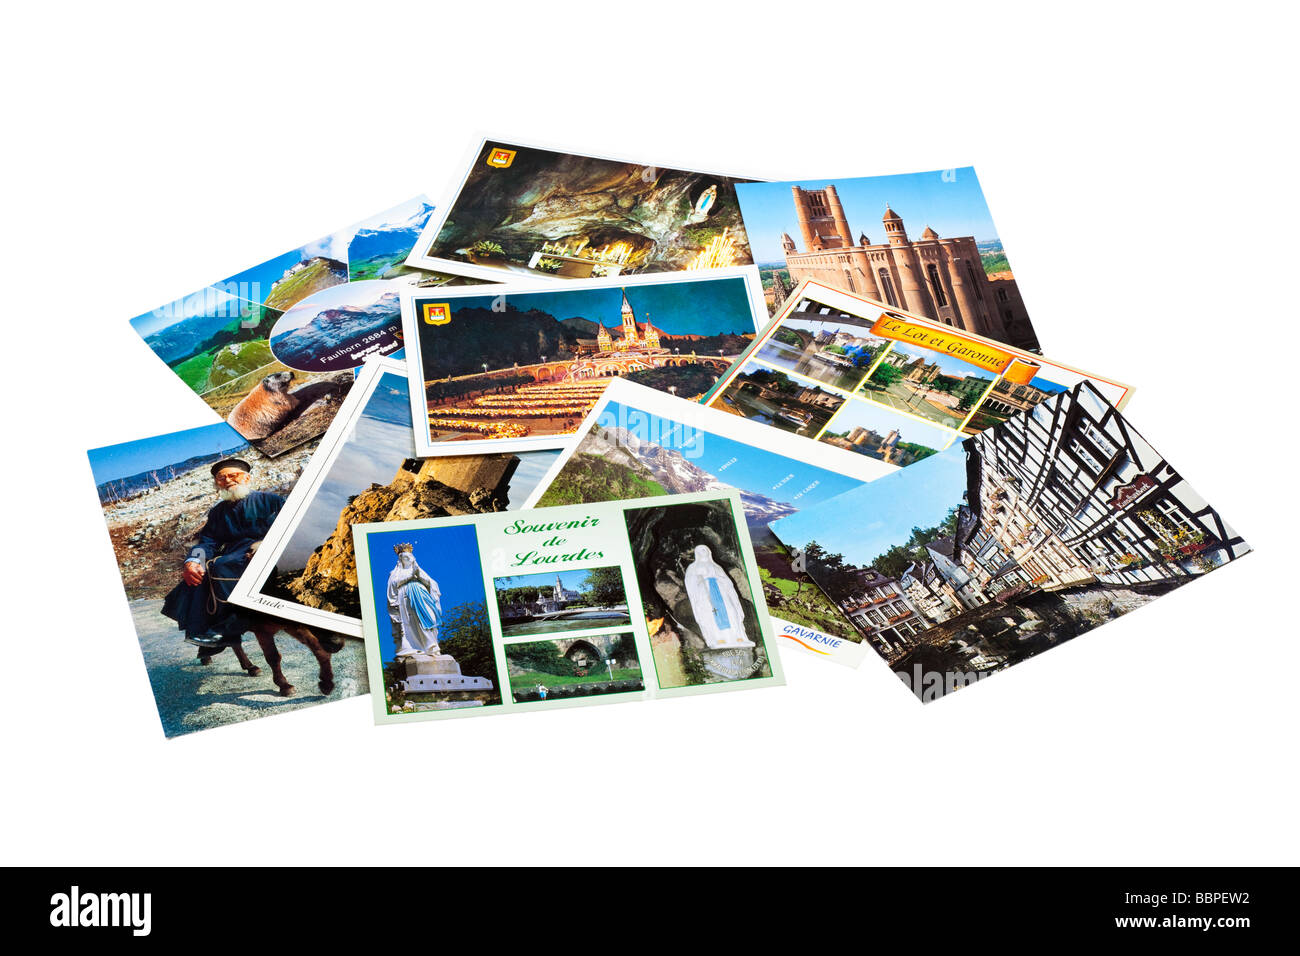 Postcards - Stock Image